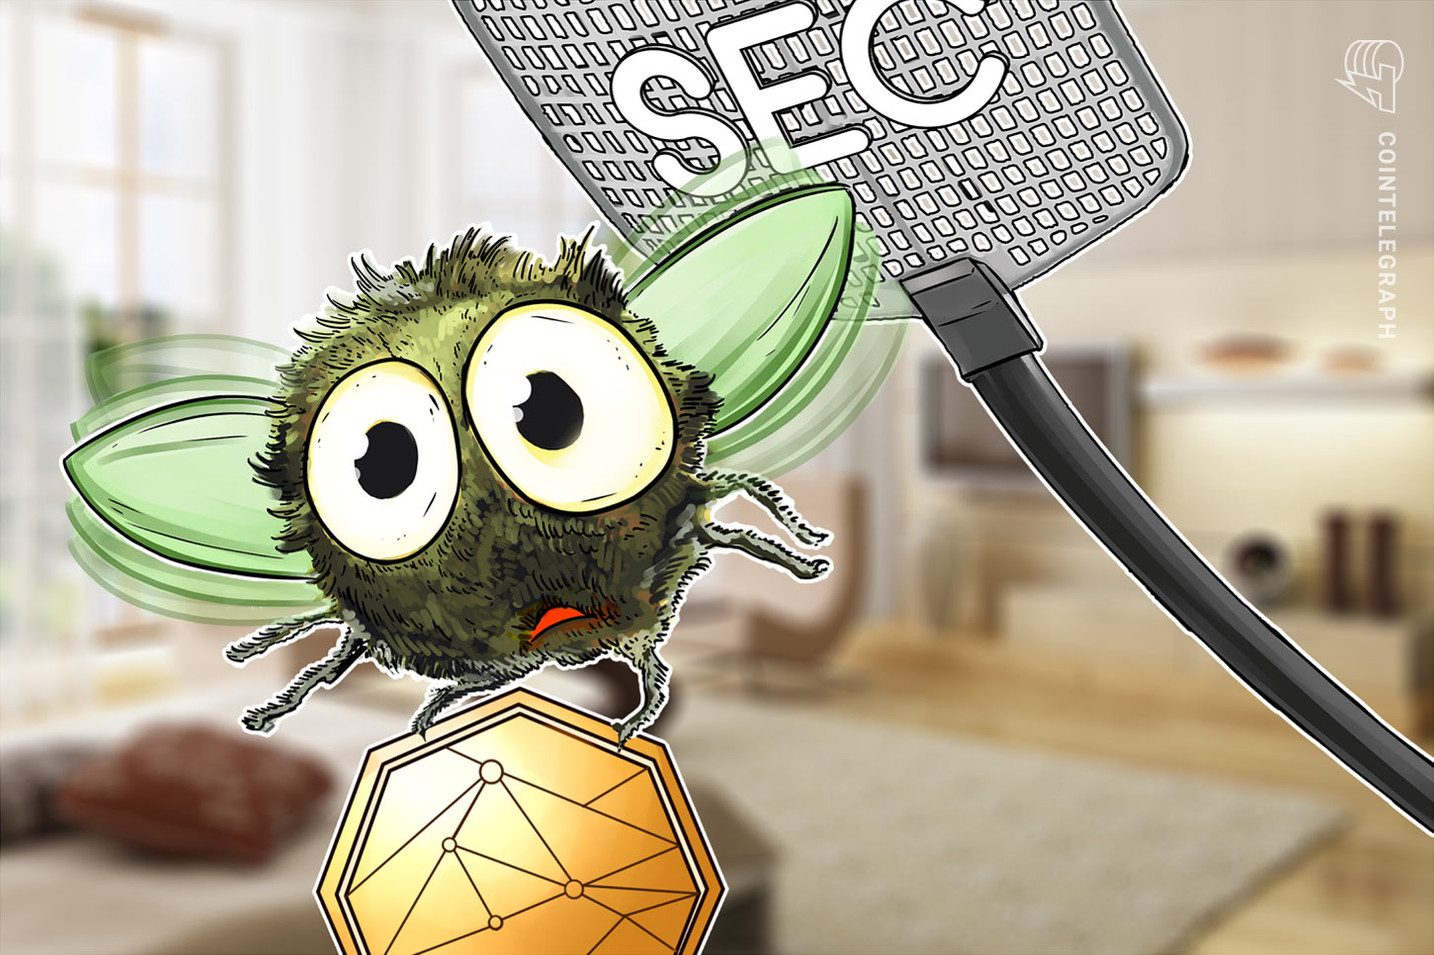 US SEC Halts Fraudulent ICO That Claimed to Possess Regulator's Approval